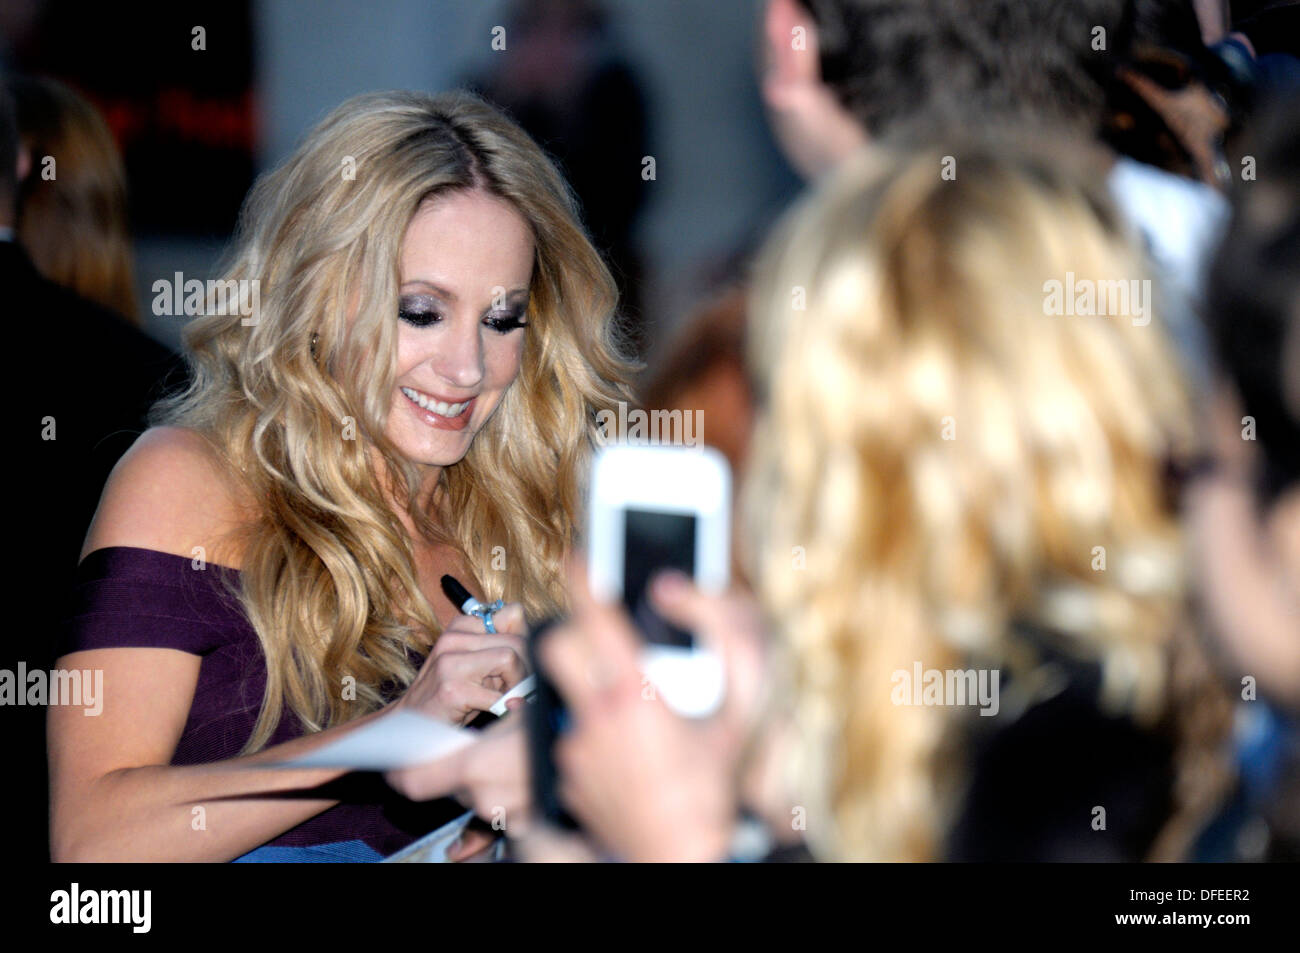 Joanne Froggatt signing autographs at the Film Premiere of 'Filth', London, 30th September 2013. - Stock Image